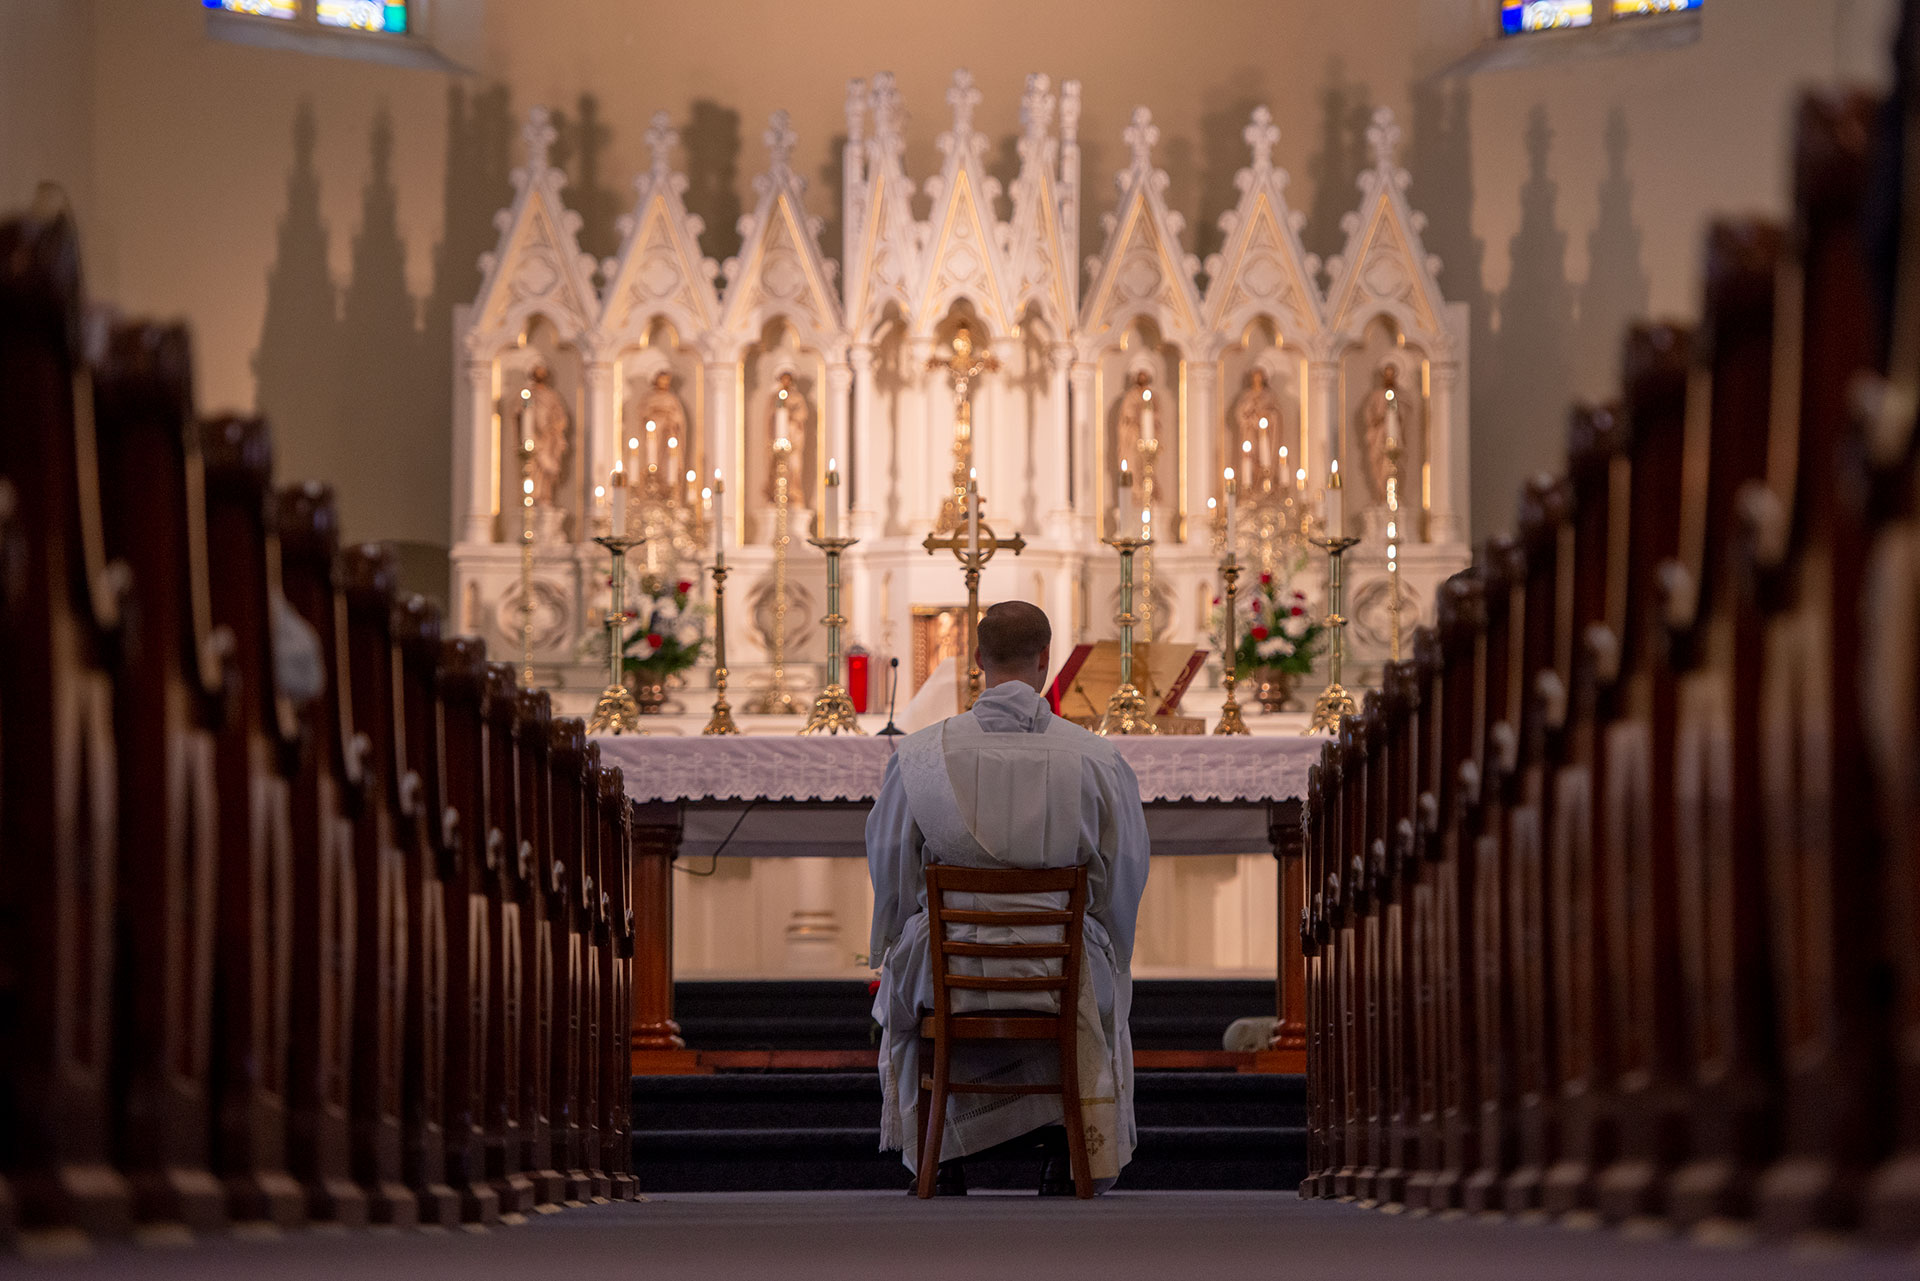 Father Martuscello sits before the altar.